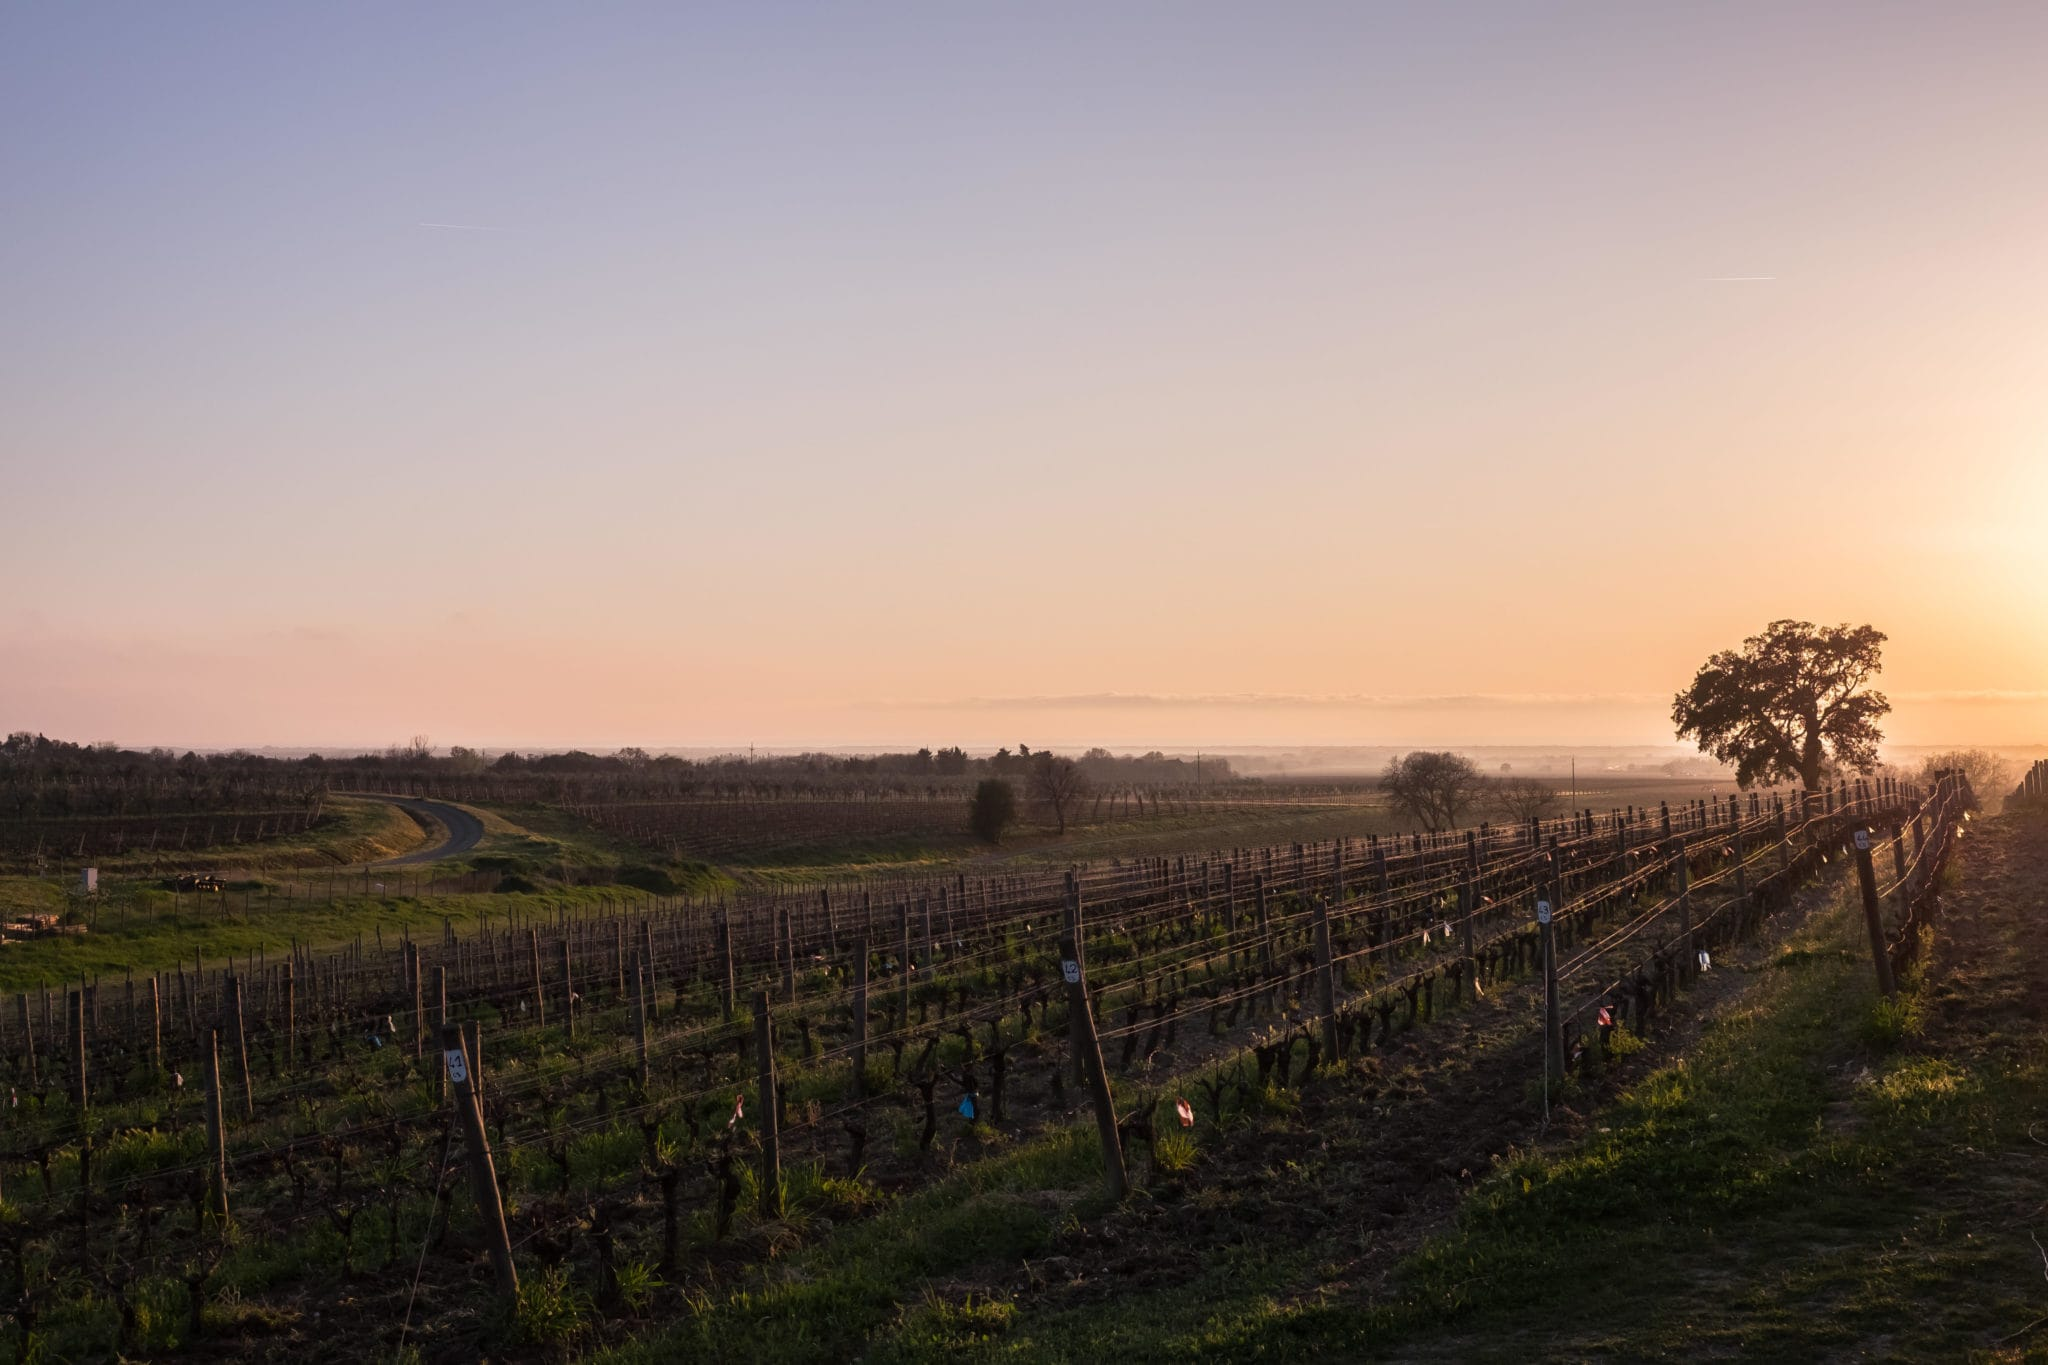 Sunset at the vineyard in Bolgheri Tuscany